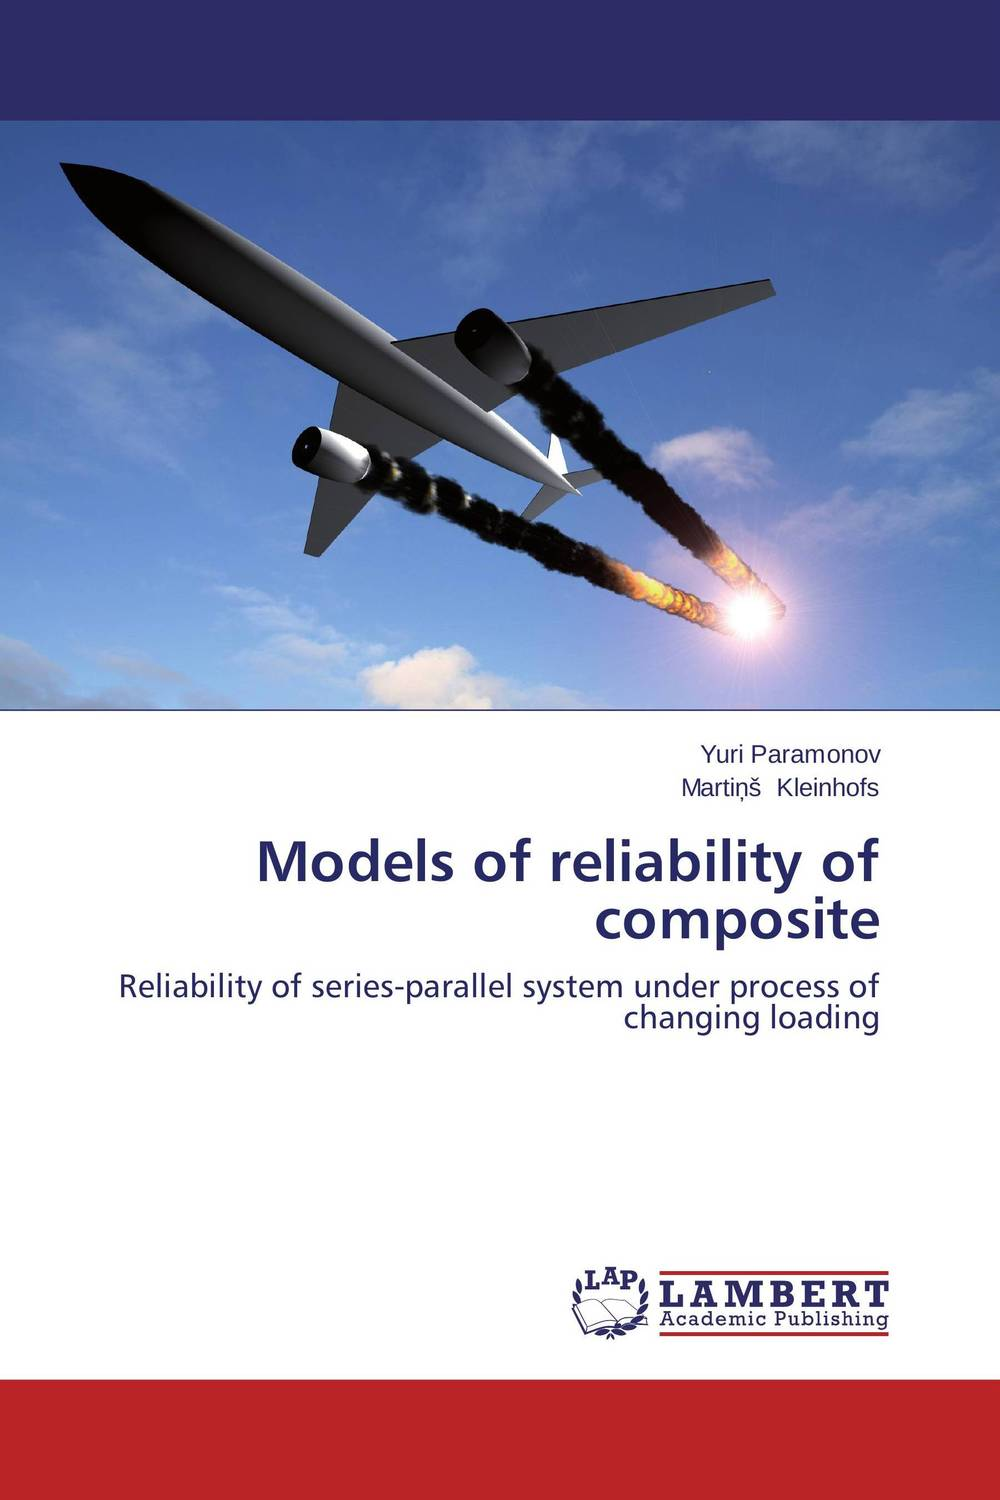 Models of reliability of composite composite structures design safety and innovation